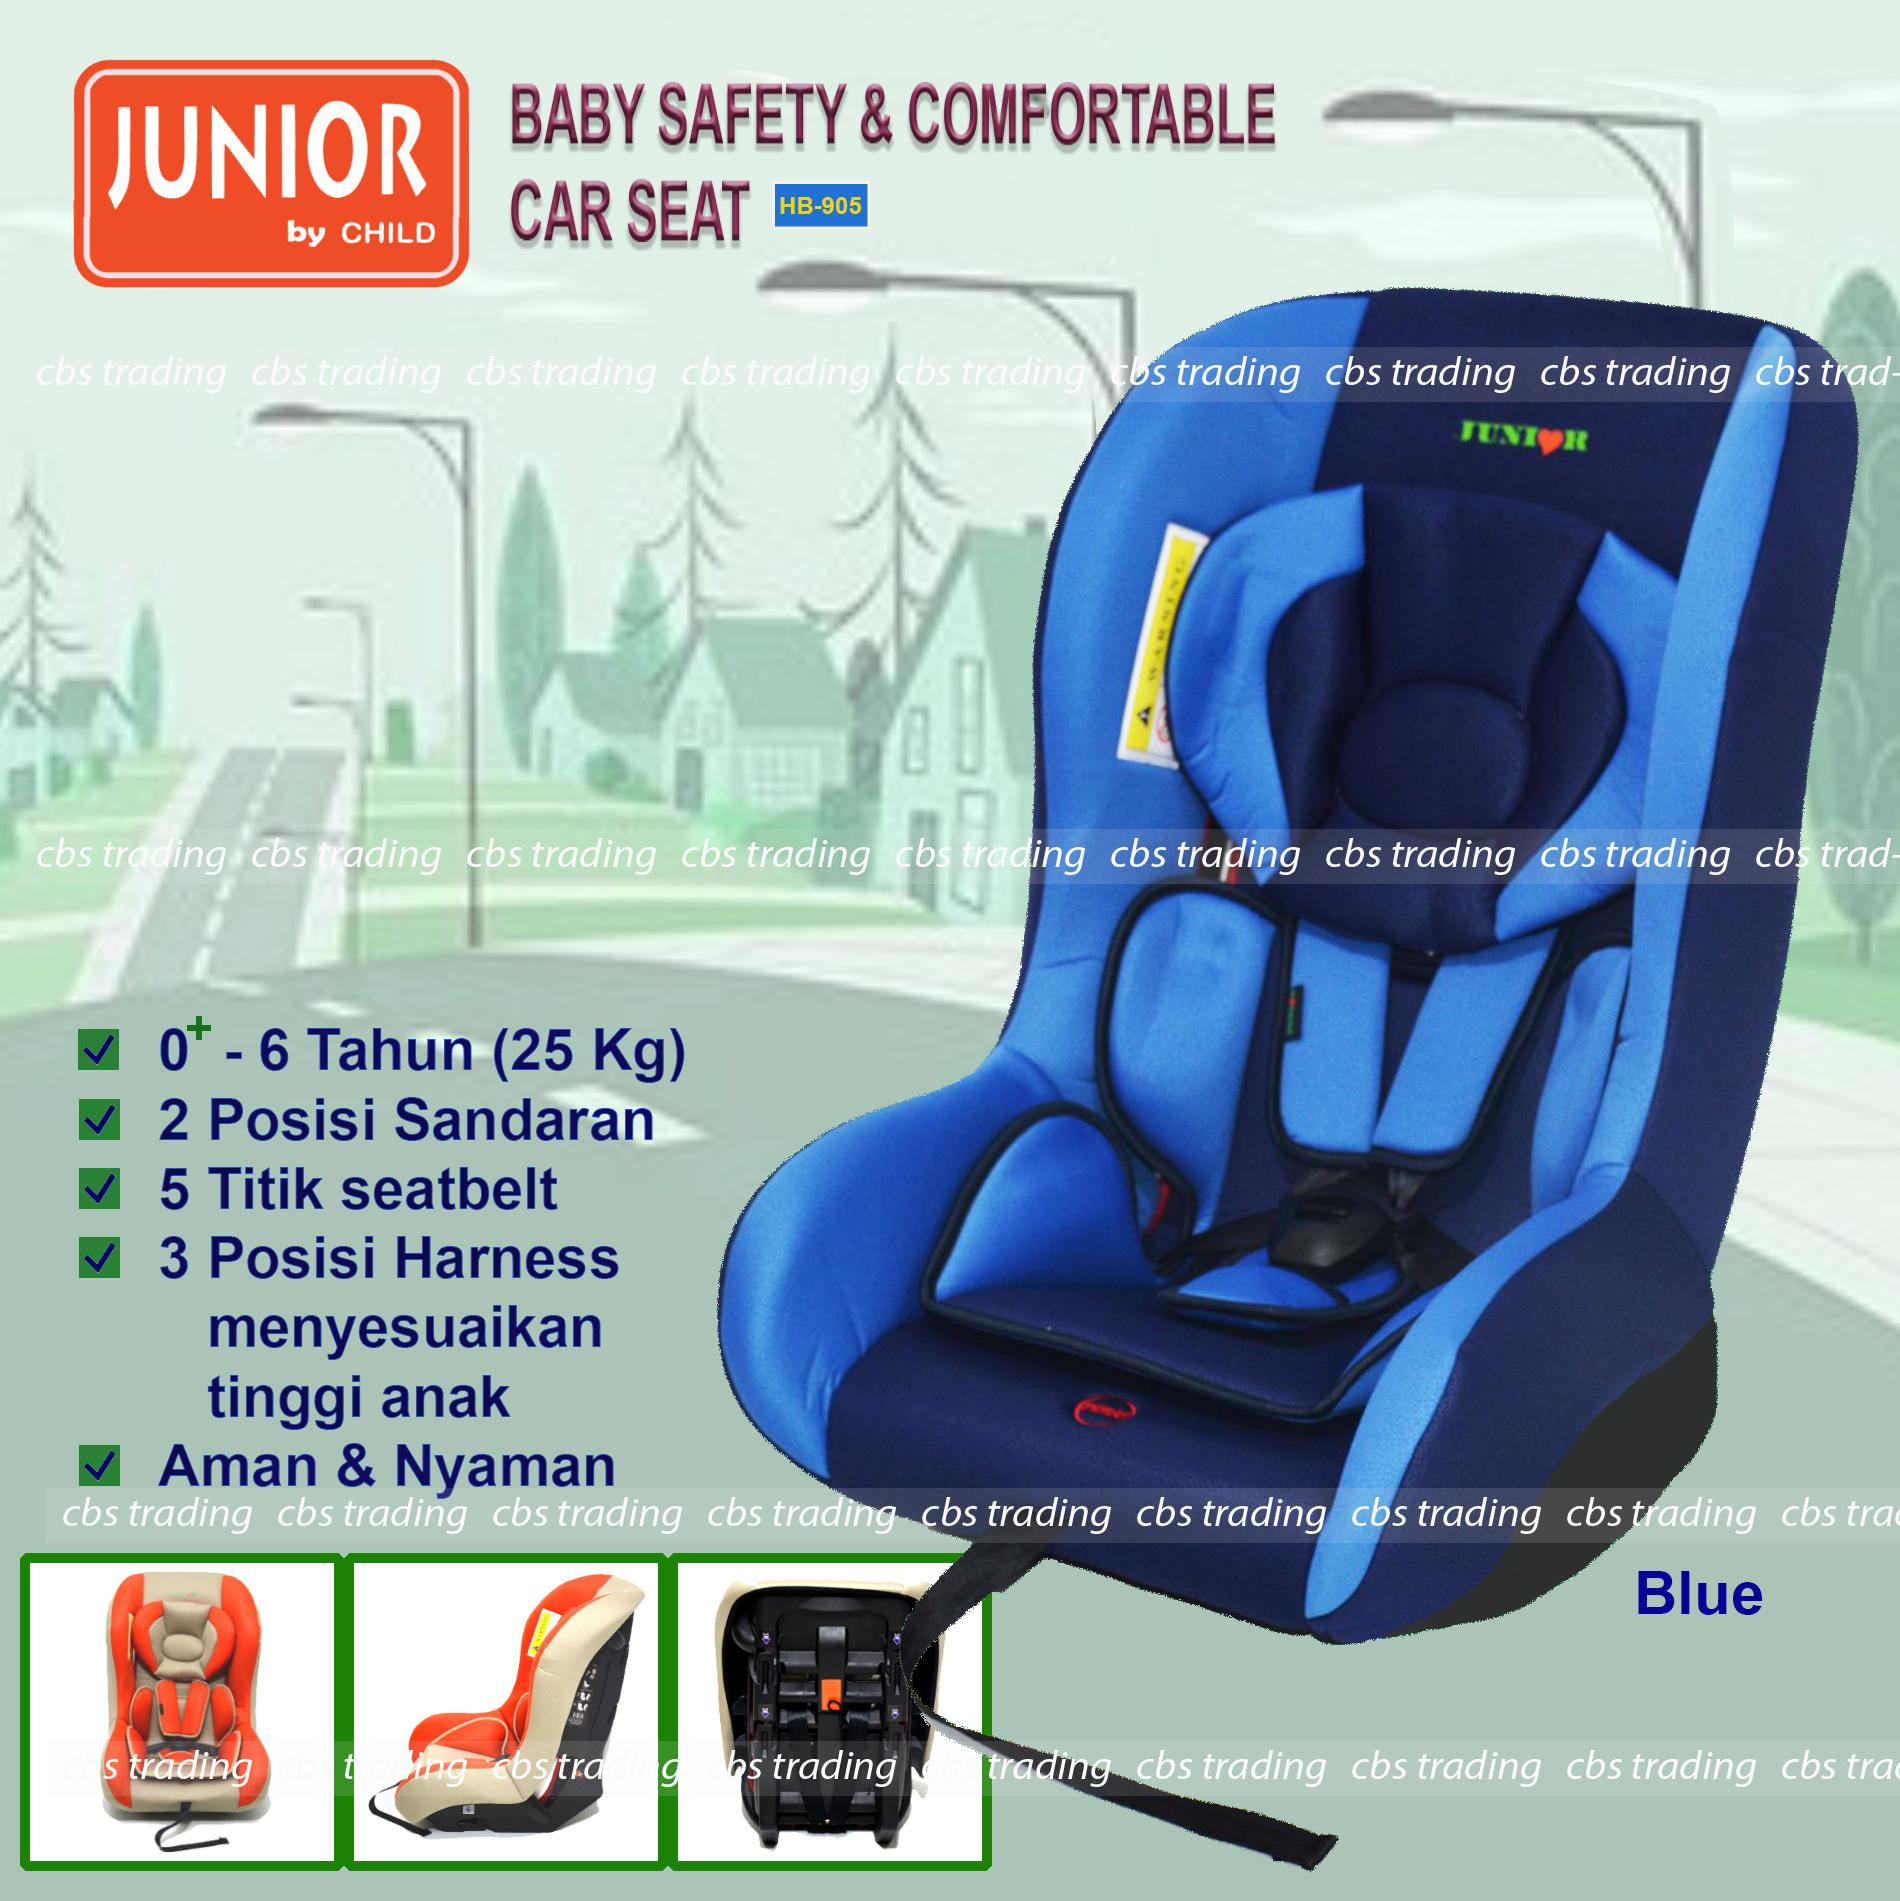 L'abeille Junior Baby Safety & Comfortable Car Seat HB-905 - Kursi Mobil